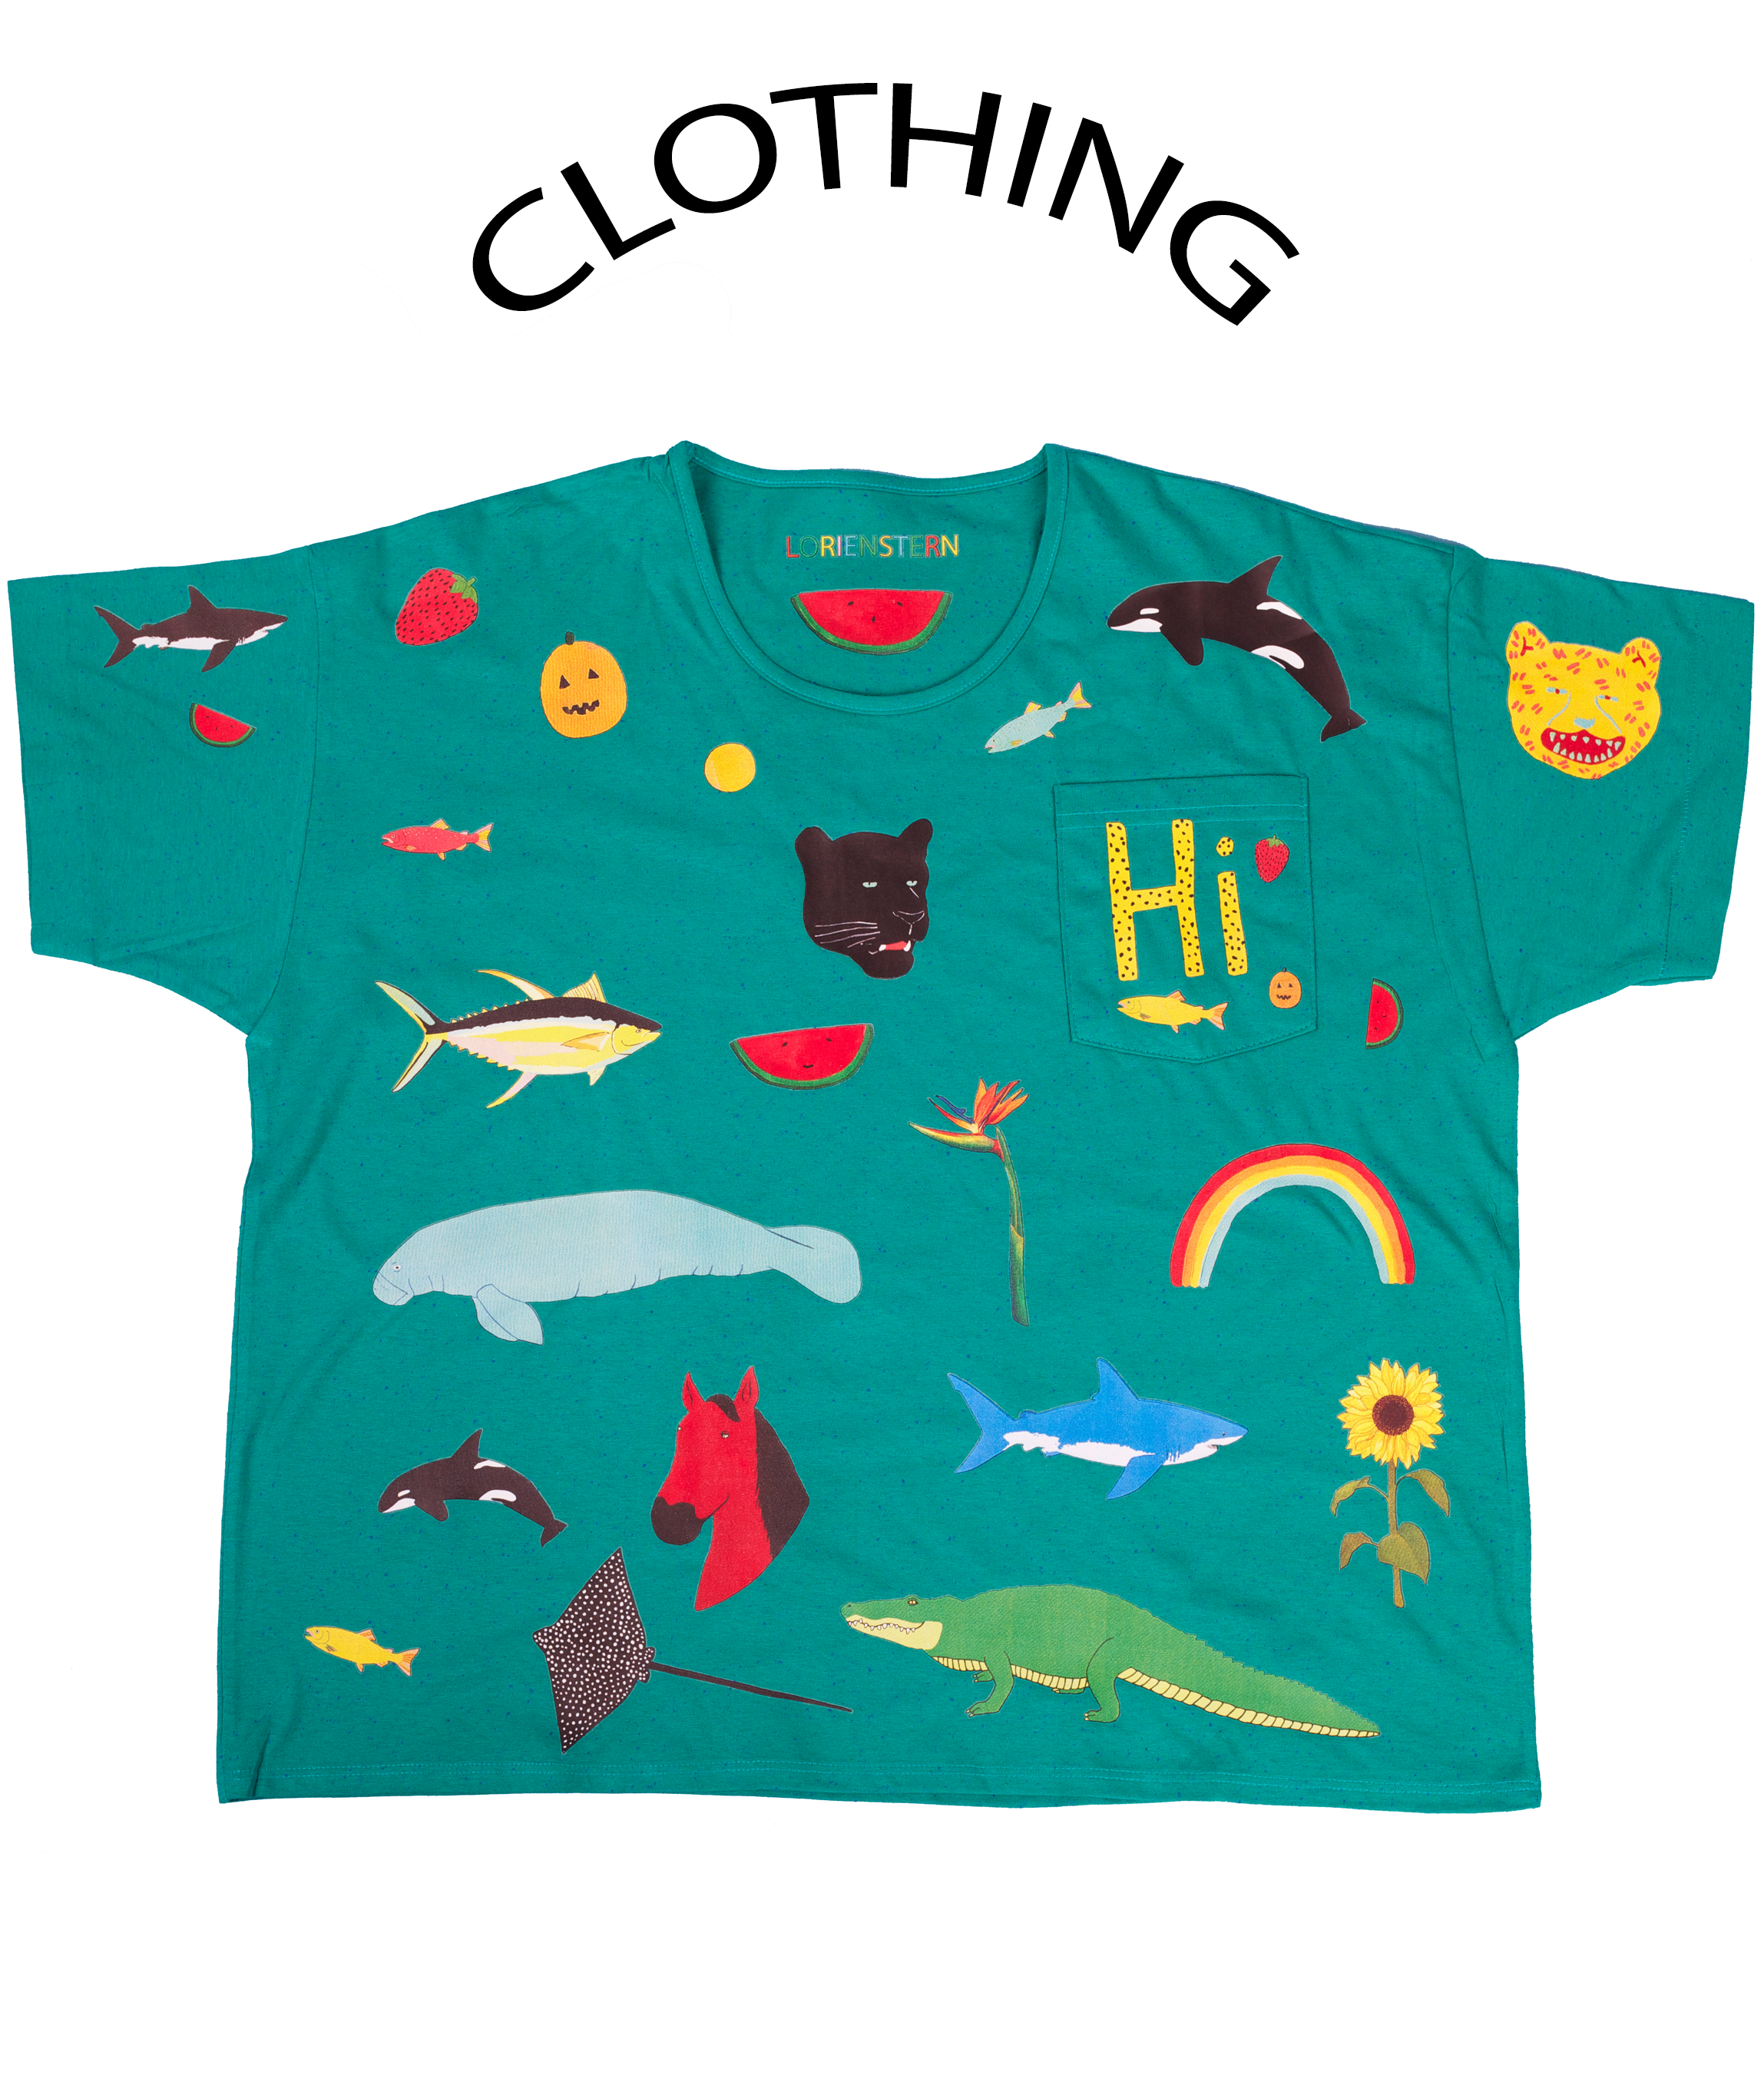 CLOTHING copy.png